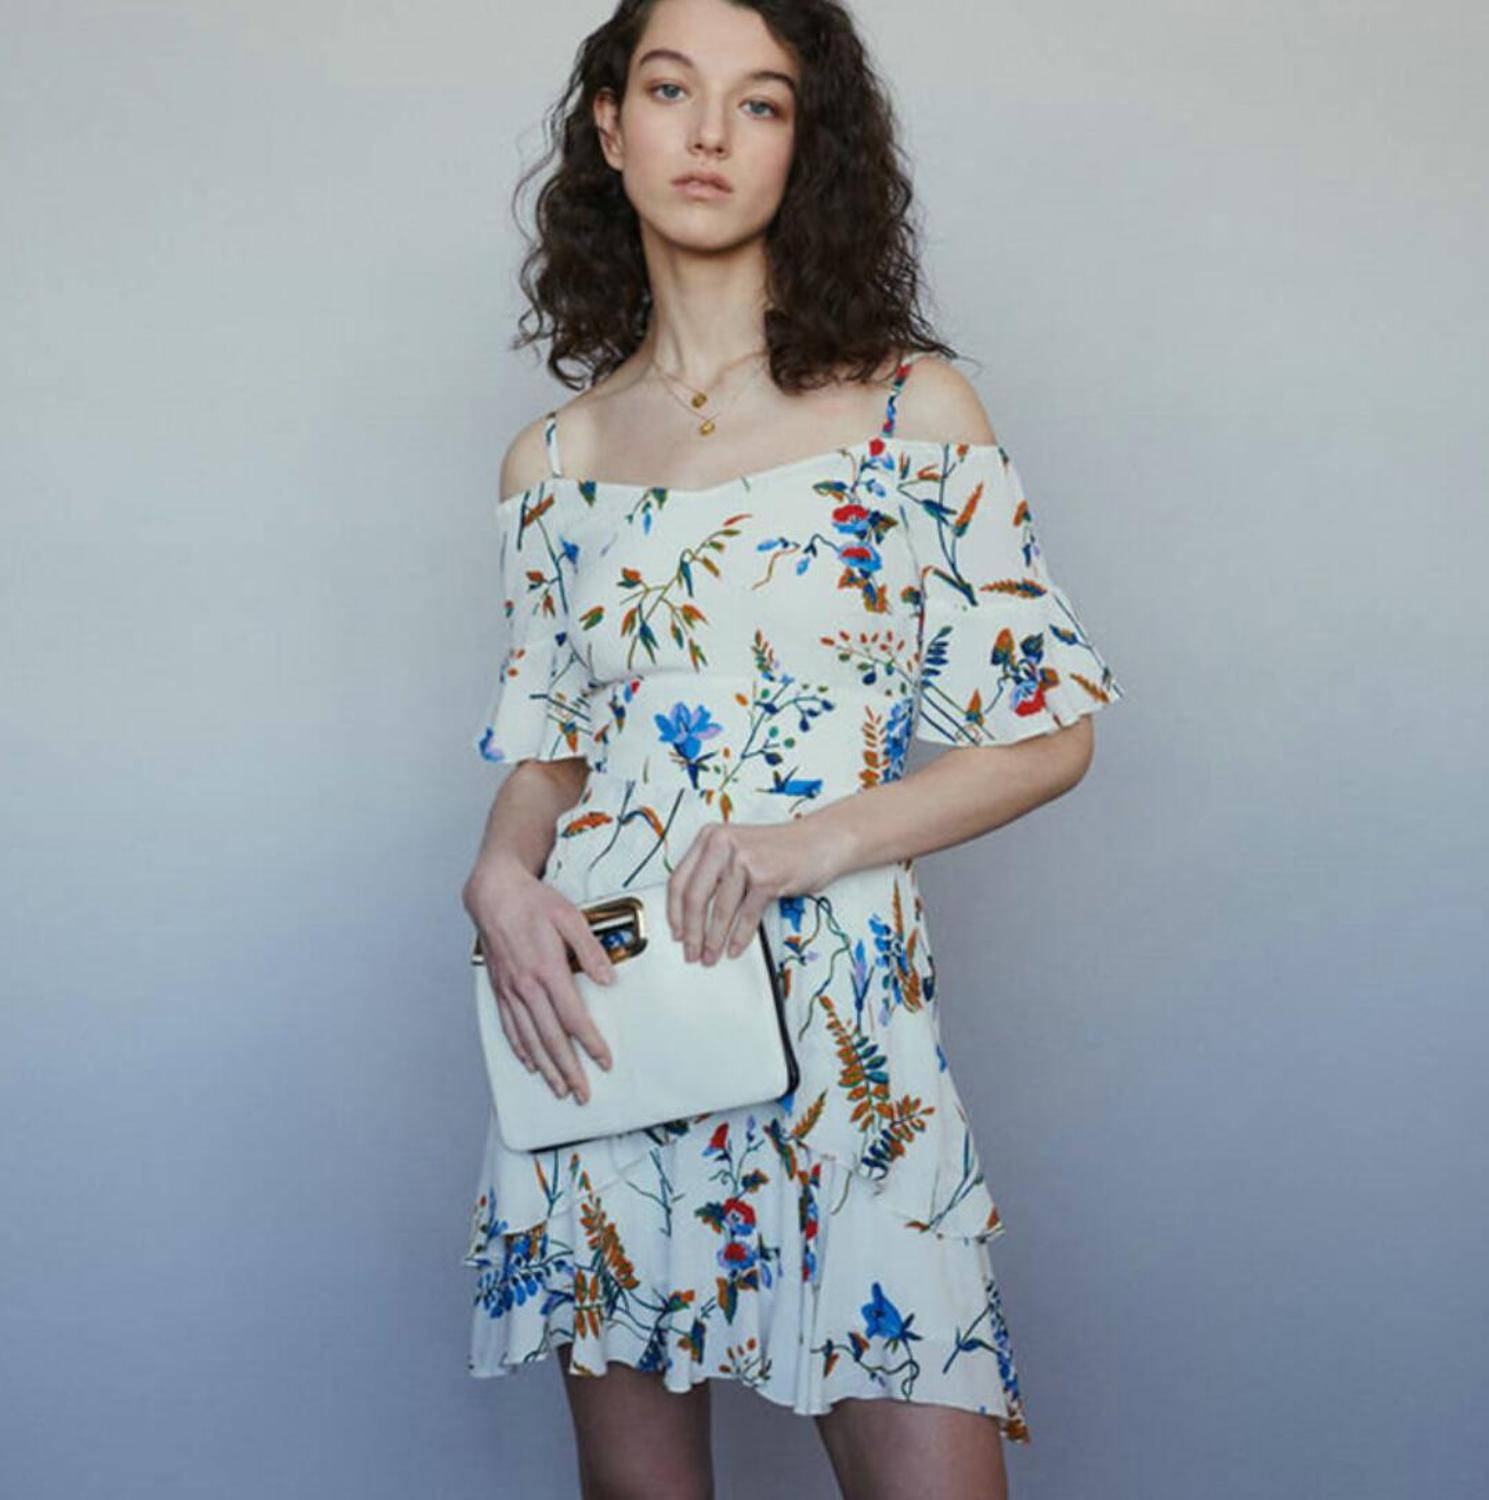 Women Dress 2019 Spring and Summer Slim Floral Sling Strapless High Rise Ruffle Mini Dress-in Dresses from Women's Clothing    1